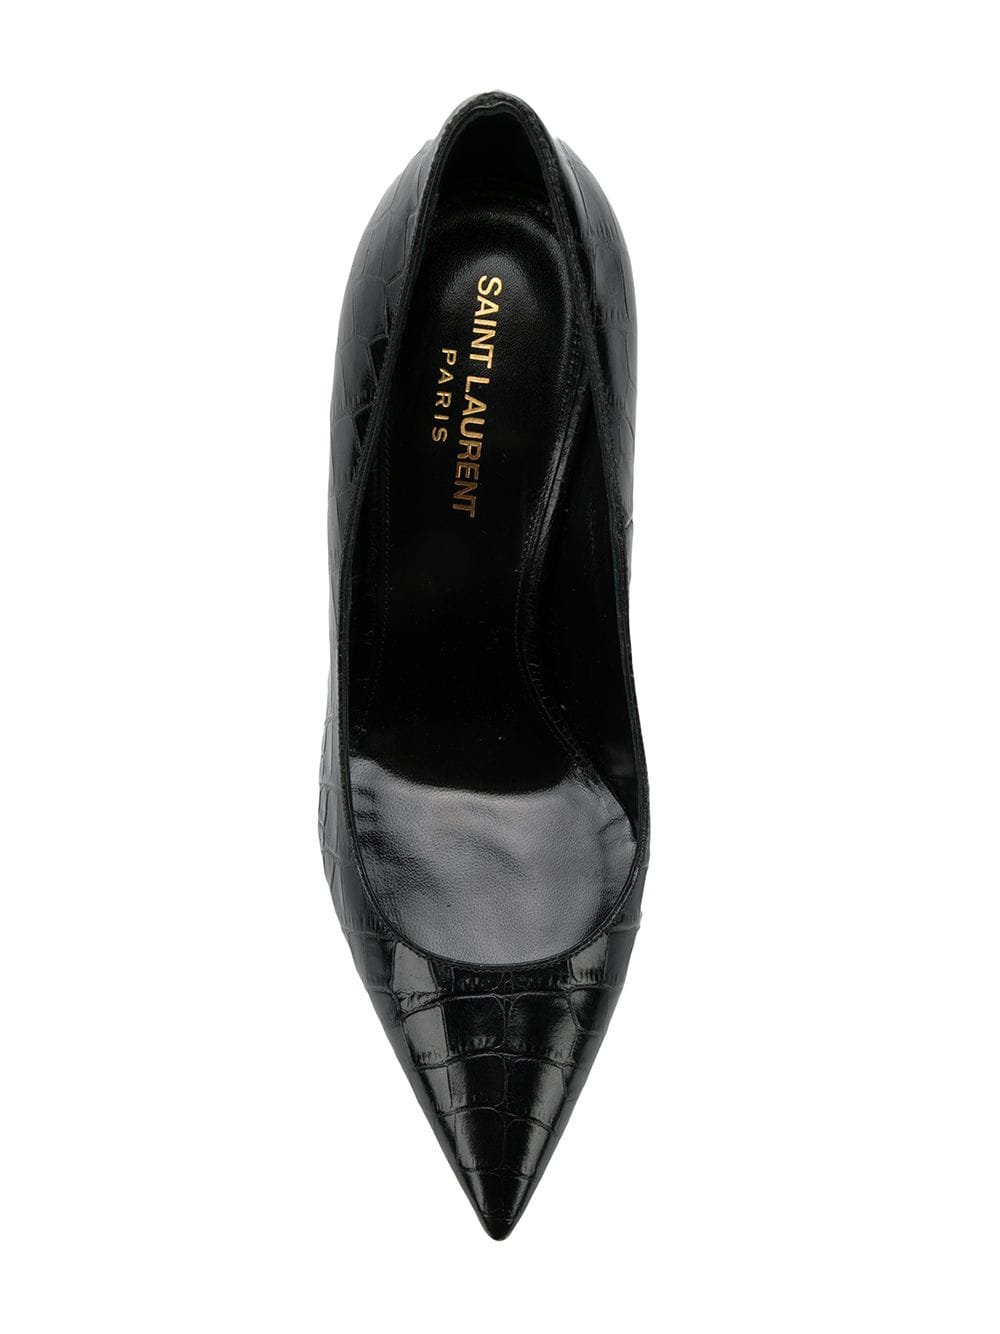 Saint Laurent 'Opyum' Pumps - Farfetch